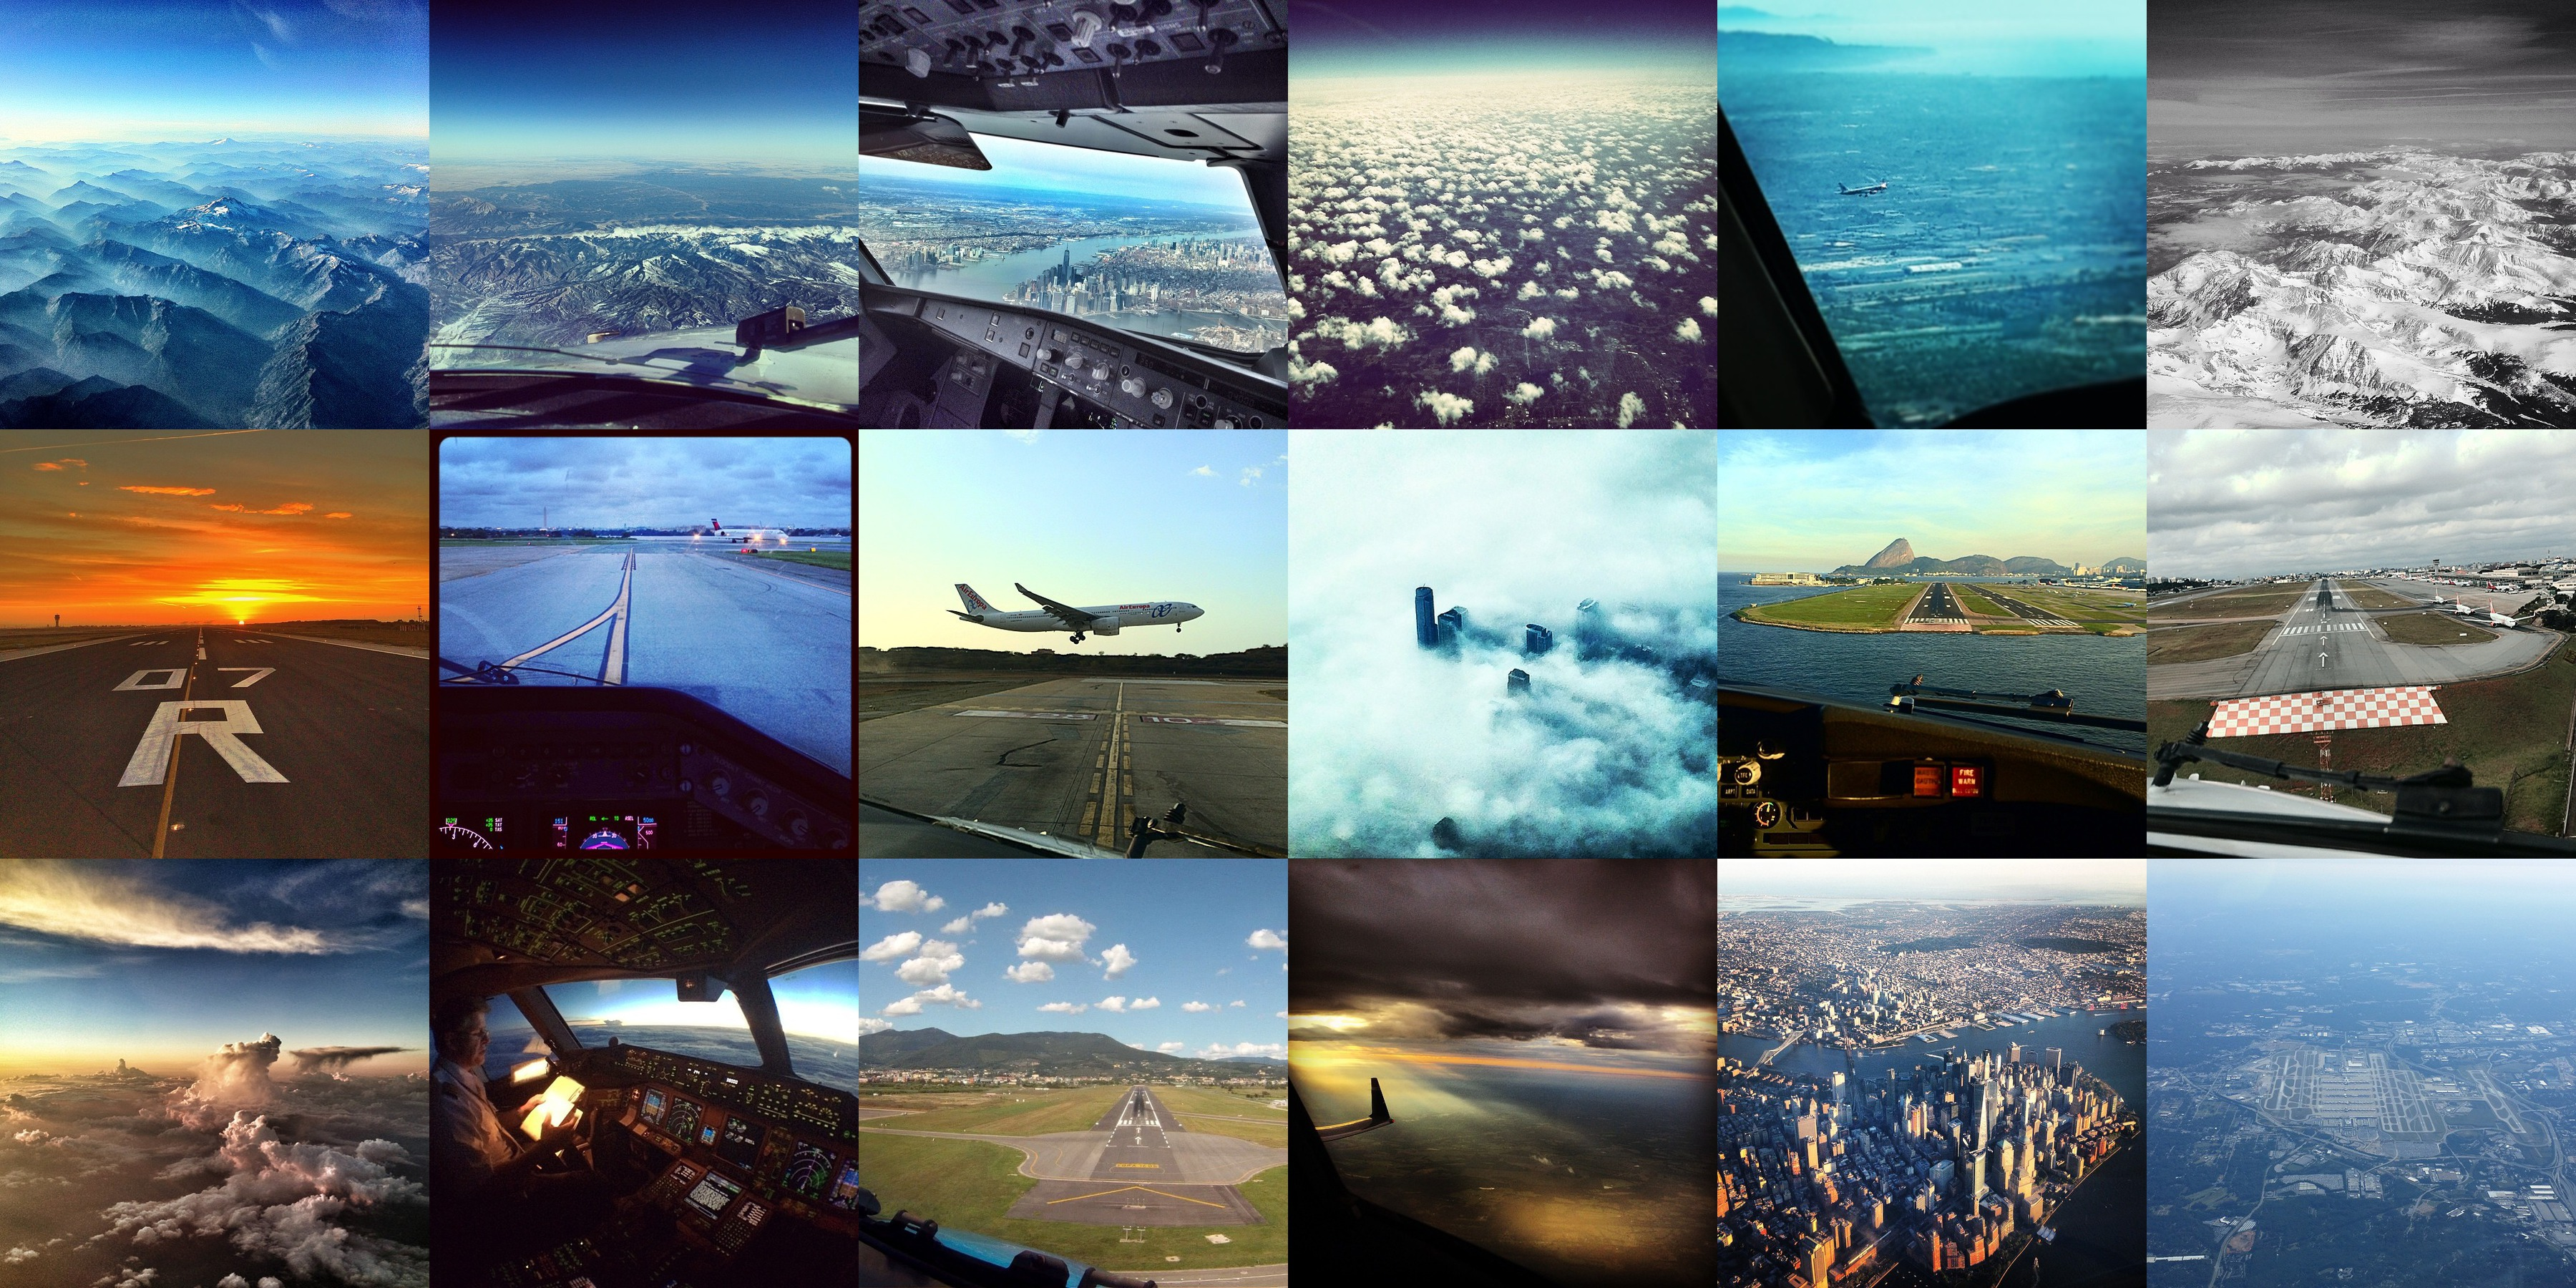 Pilots of Instagram